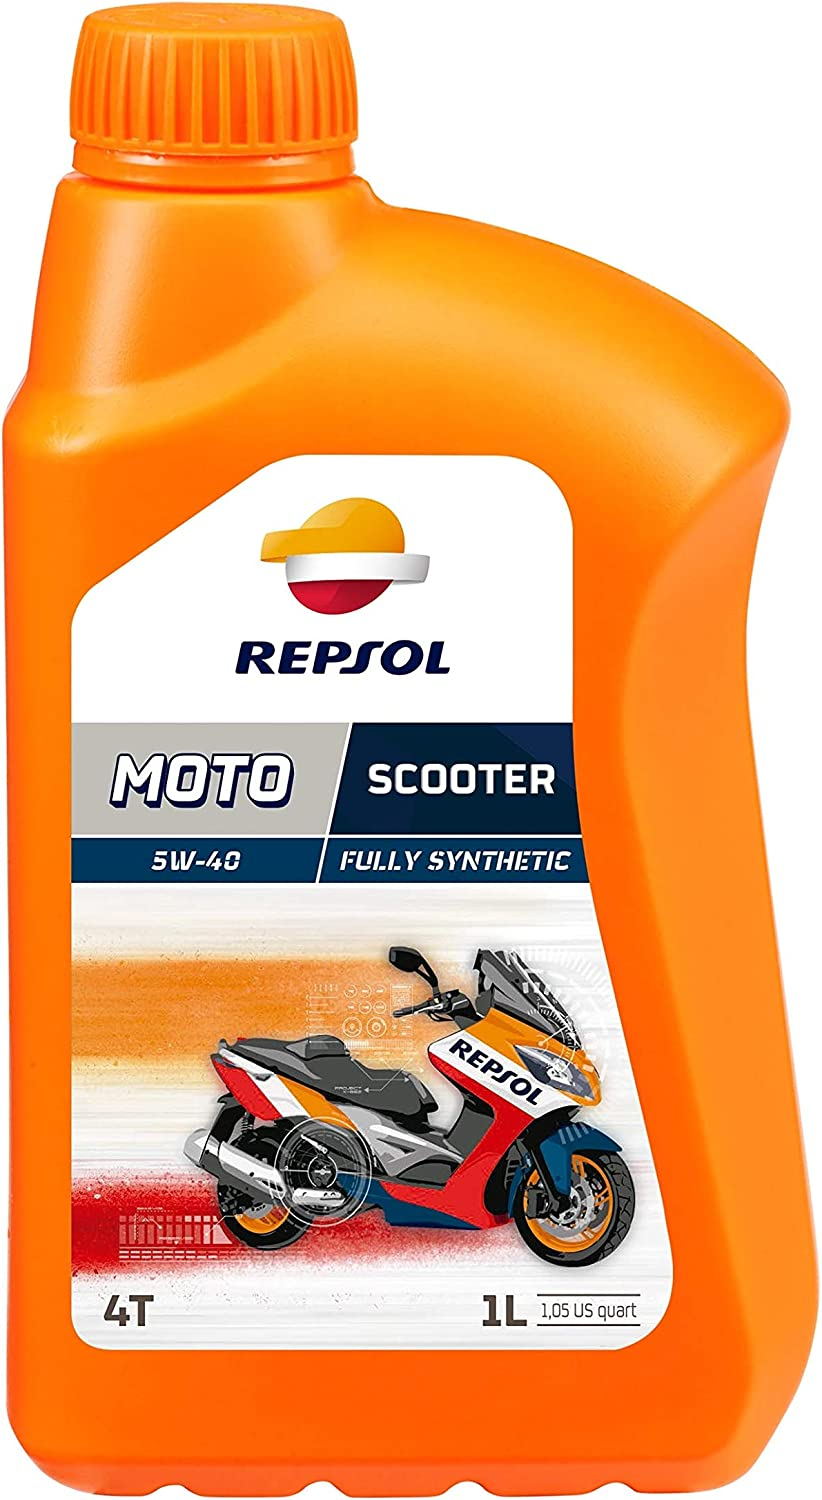 Repsol Moto Scooter 4t 5w40 Motorcycle Engine Oil 1 L Auto